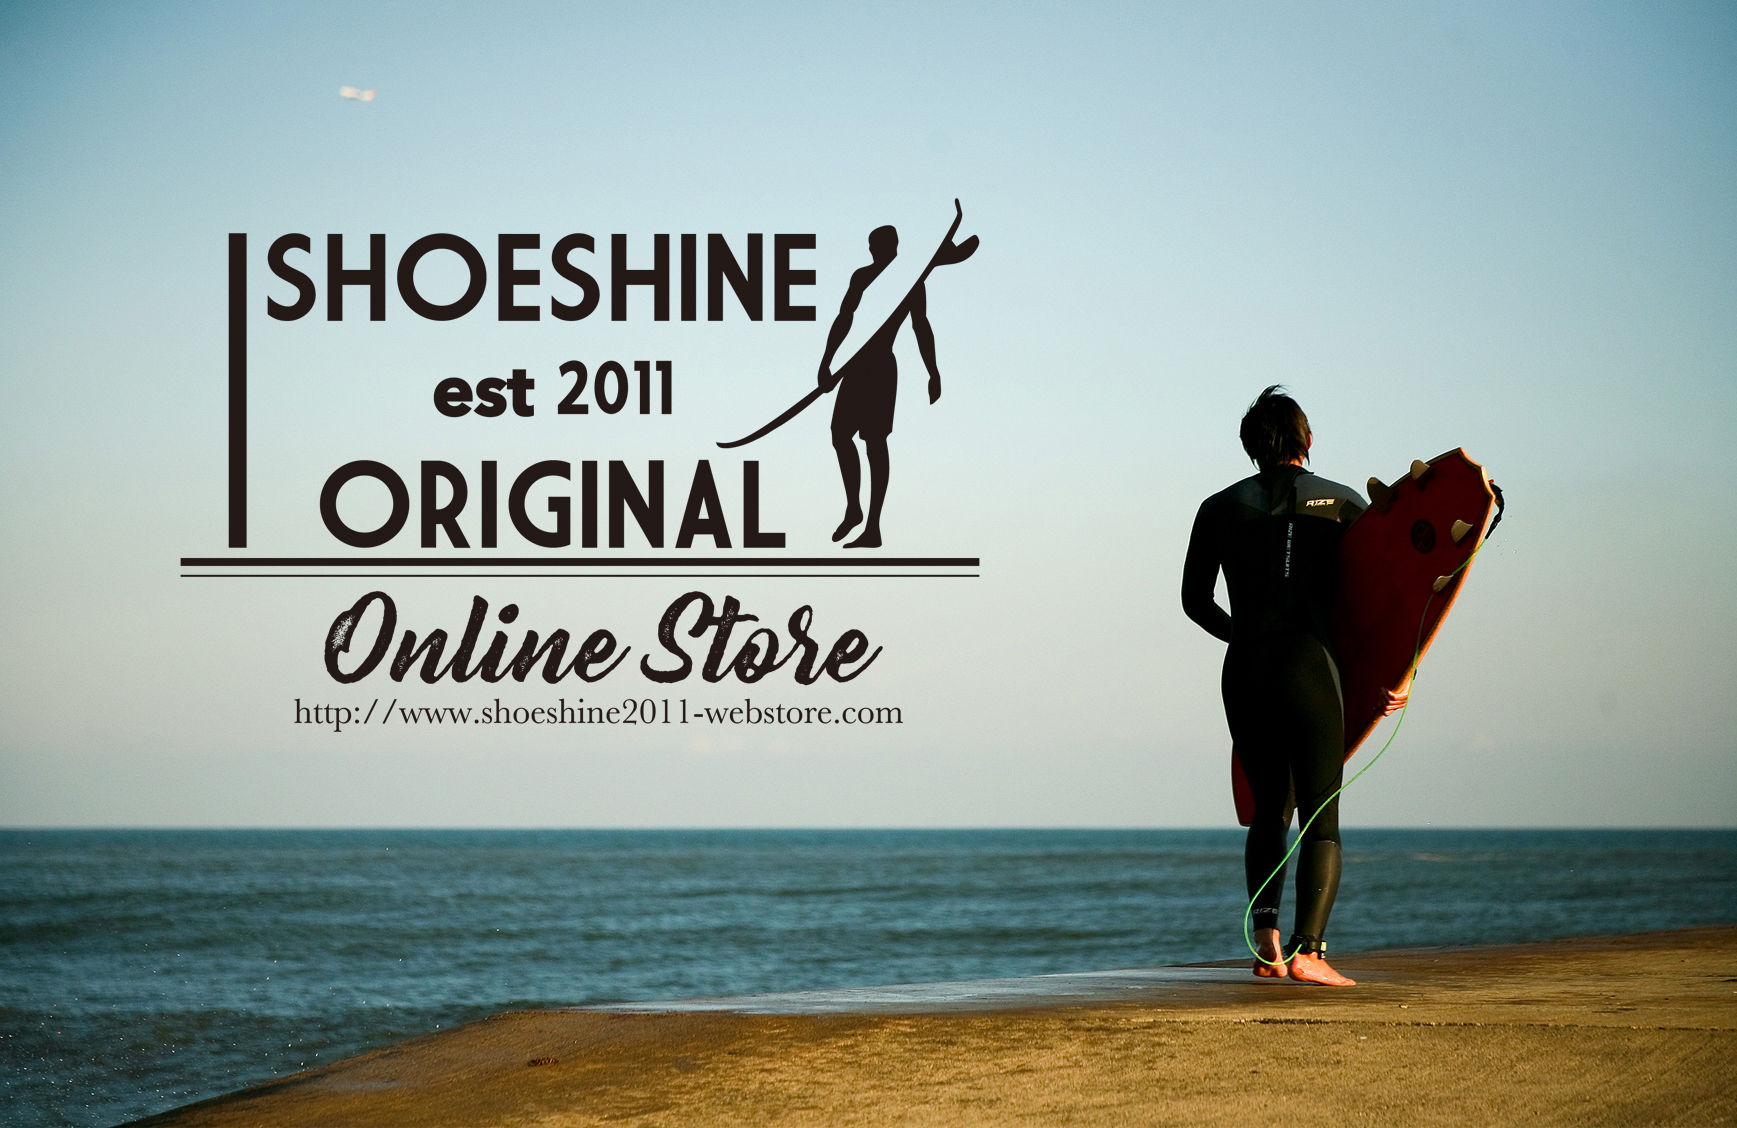 Shoeshine Original EST2011